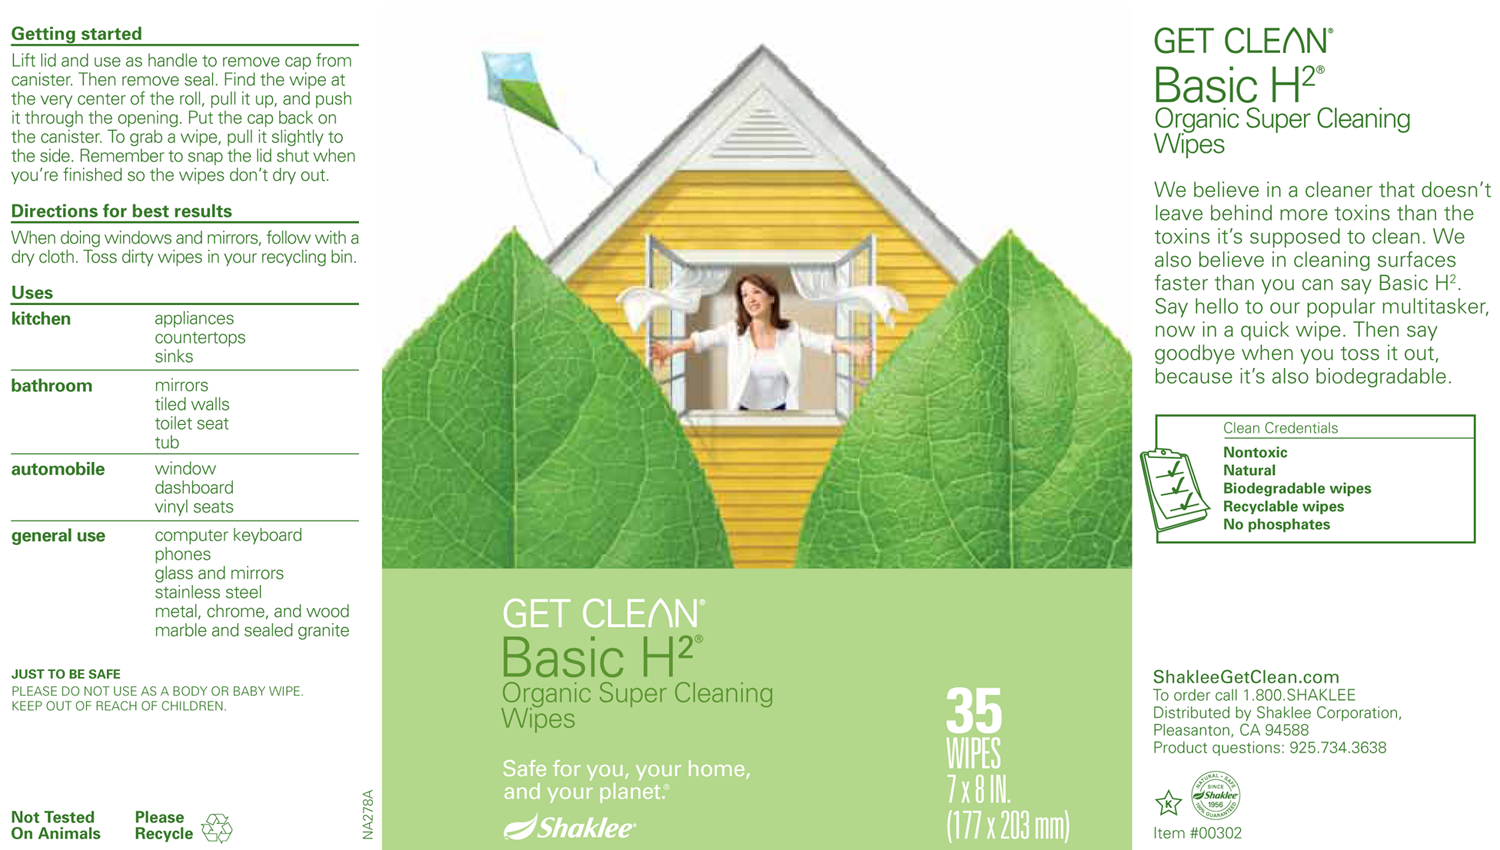 Basic H2 Cleaning Wipes Label